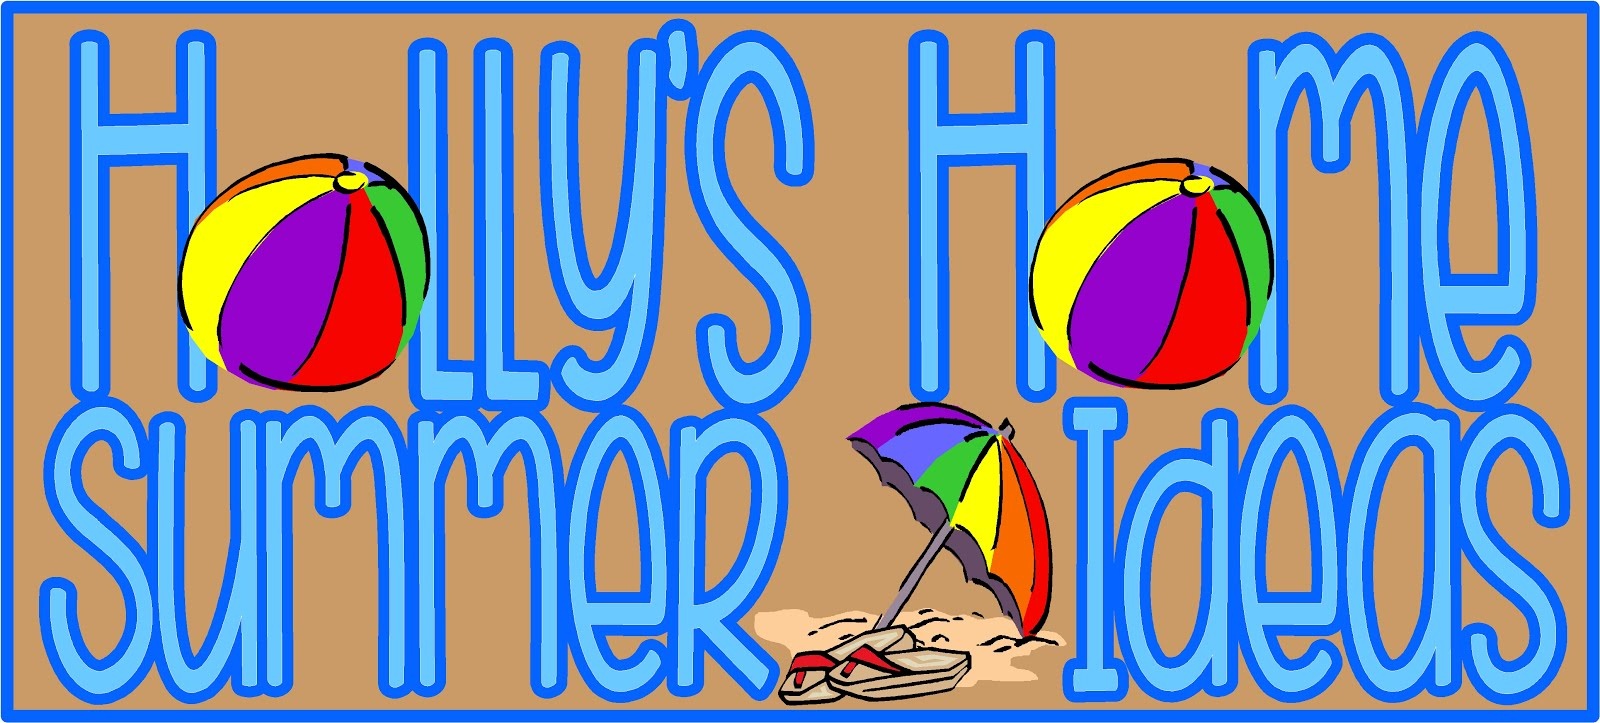 Holly's Home Summer ideas